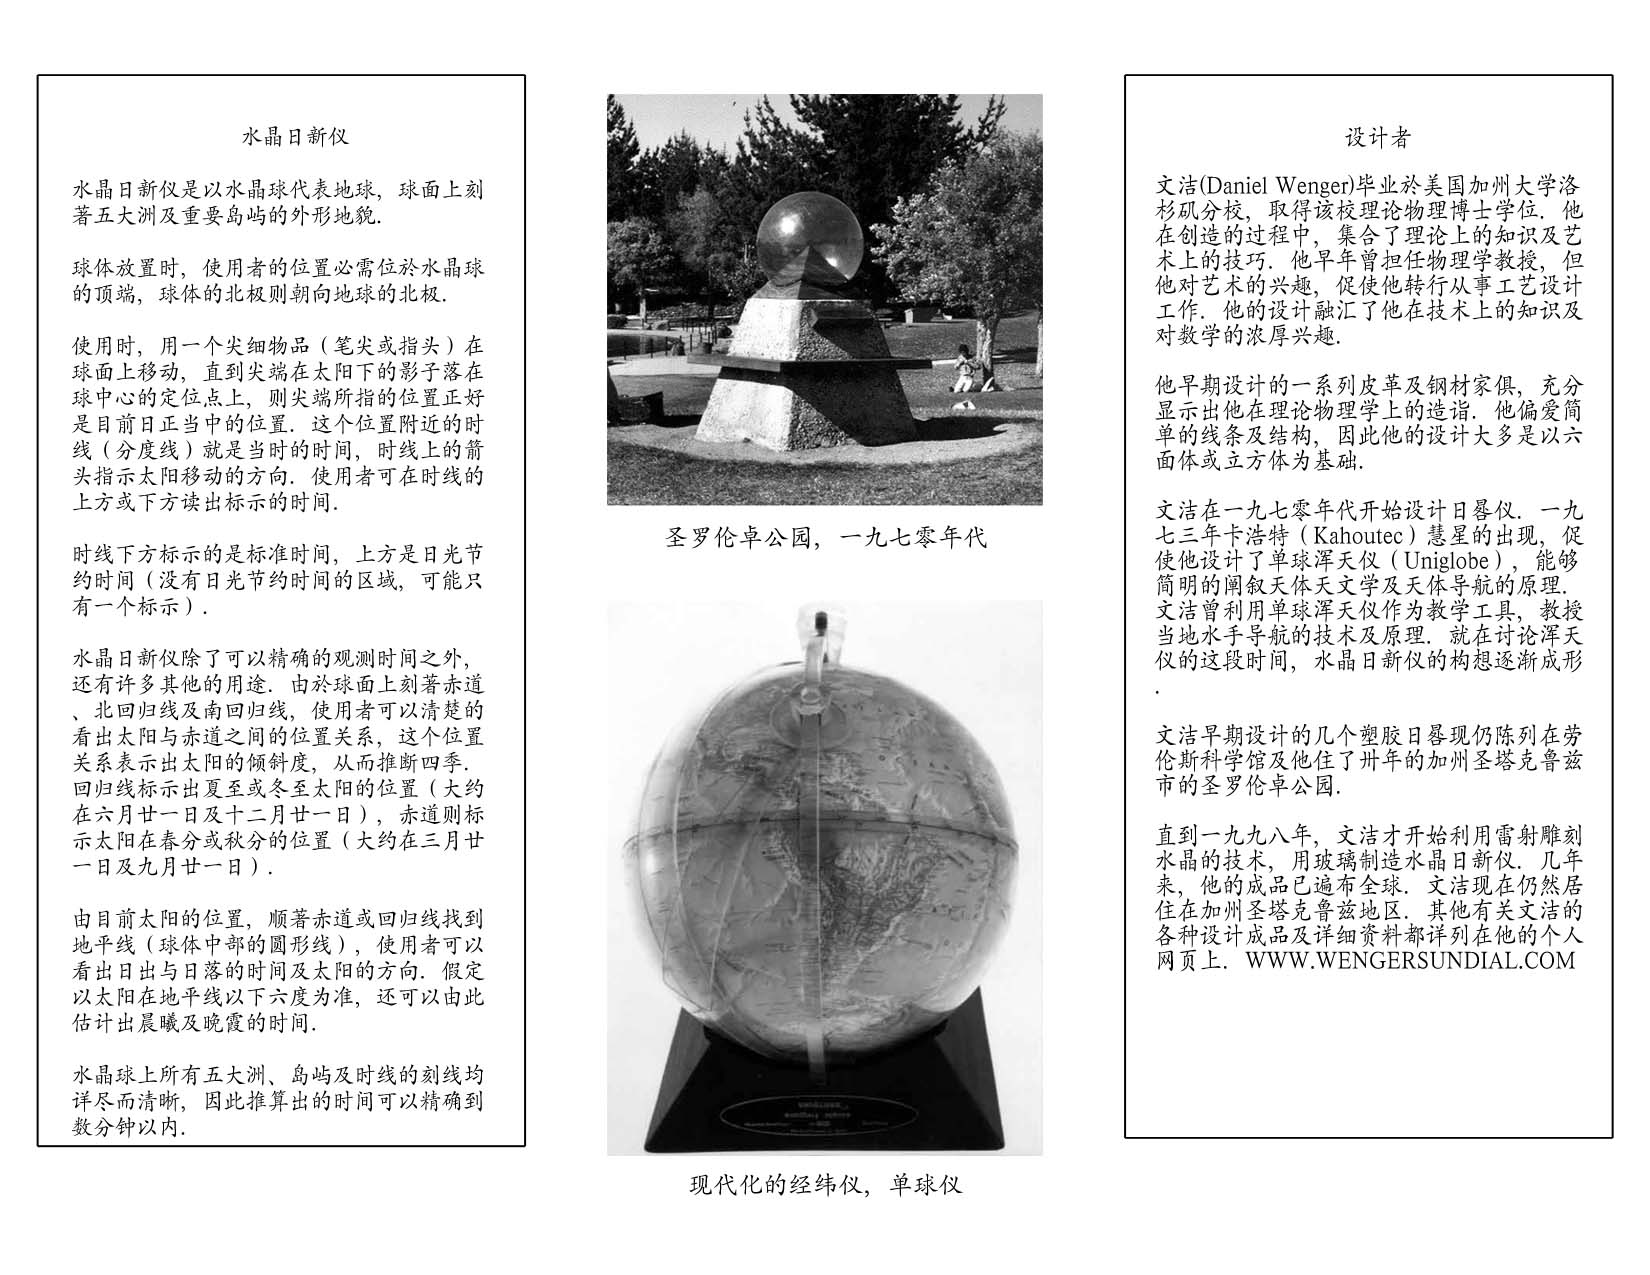 Wenger Sundial Brochure in Simplified Chinese